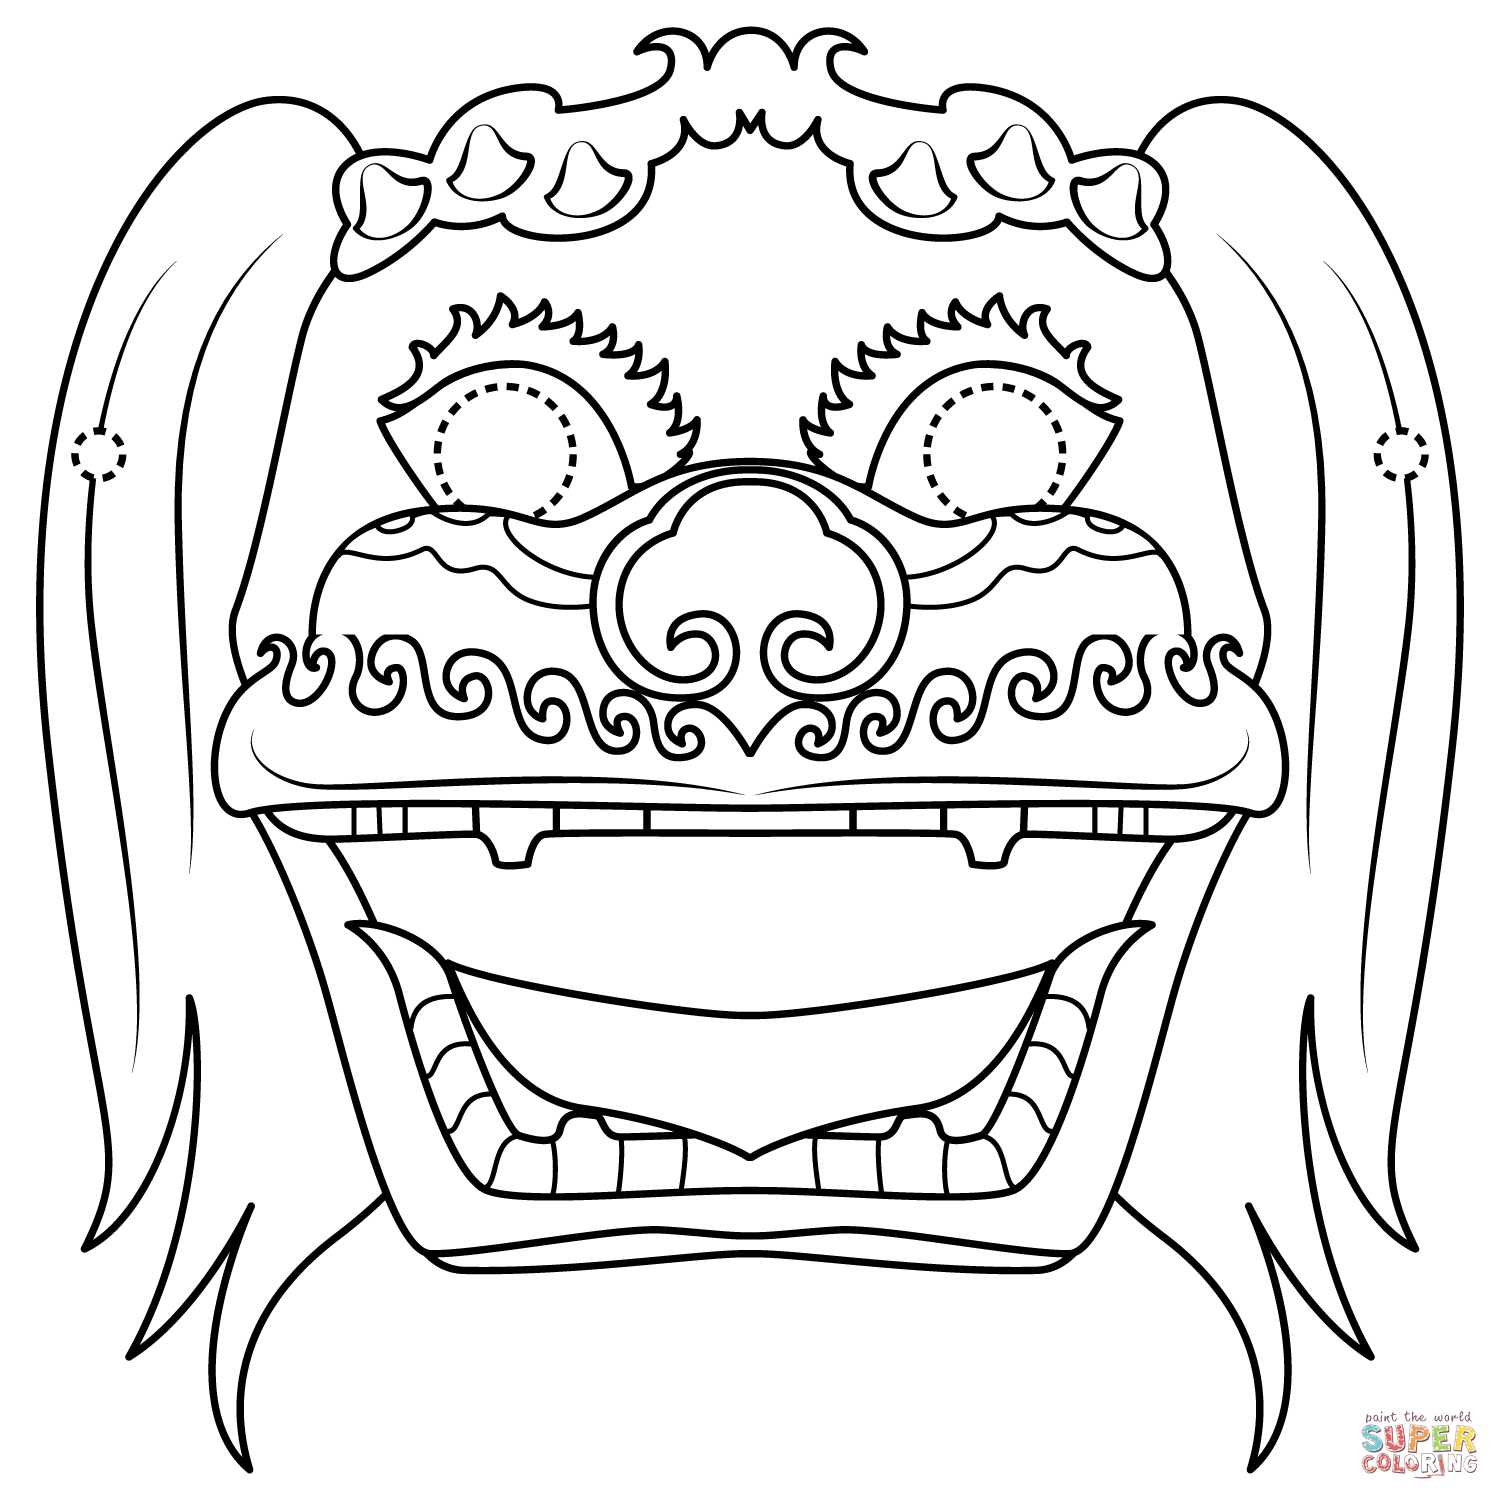 Chinese Lion Dance Mask Coloring Page Free Printable Coloring Pages In 2021 Coloring Pages Dance Coloring Pages Free Printable Coloring Pages